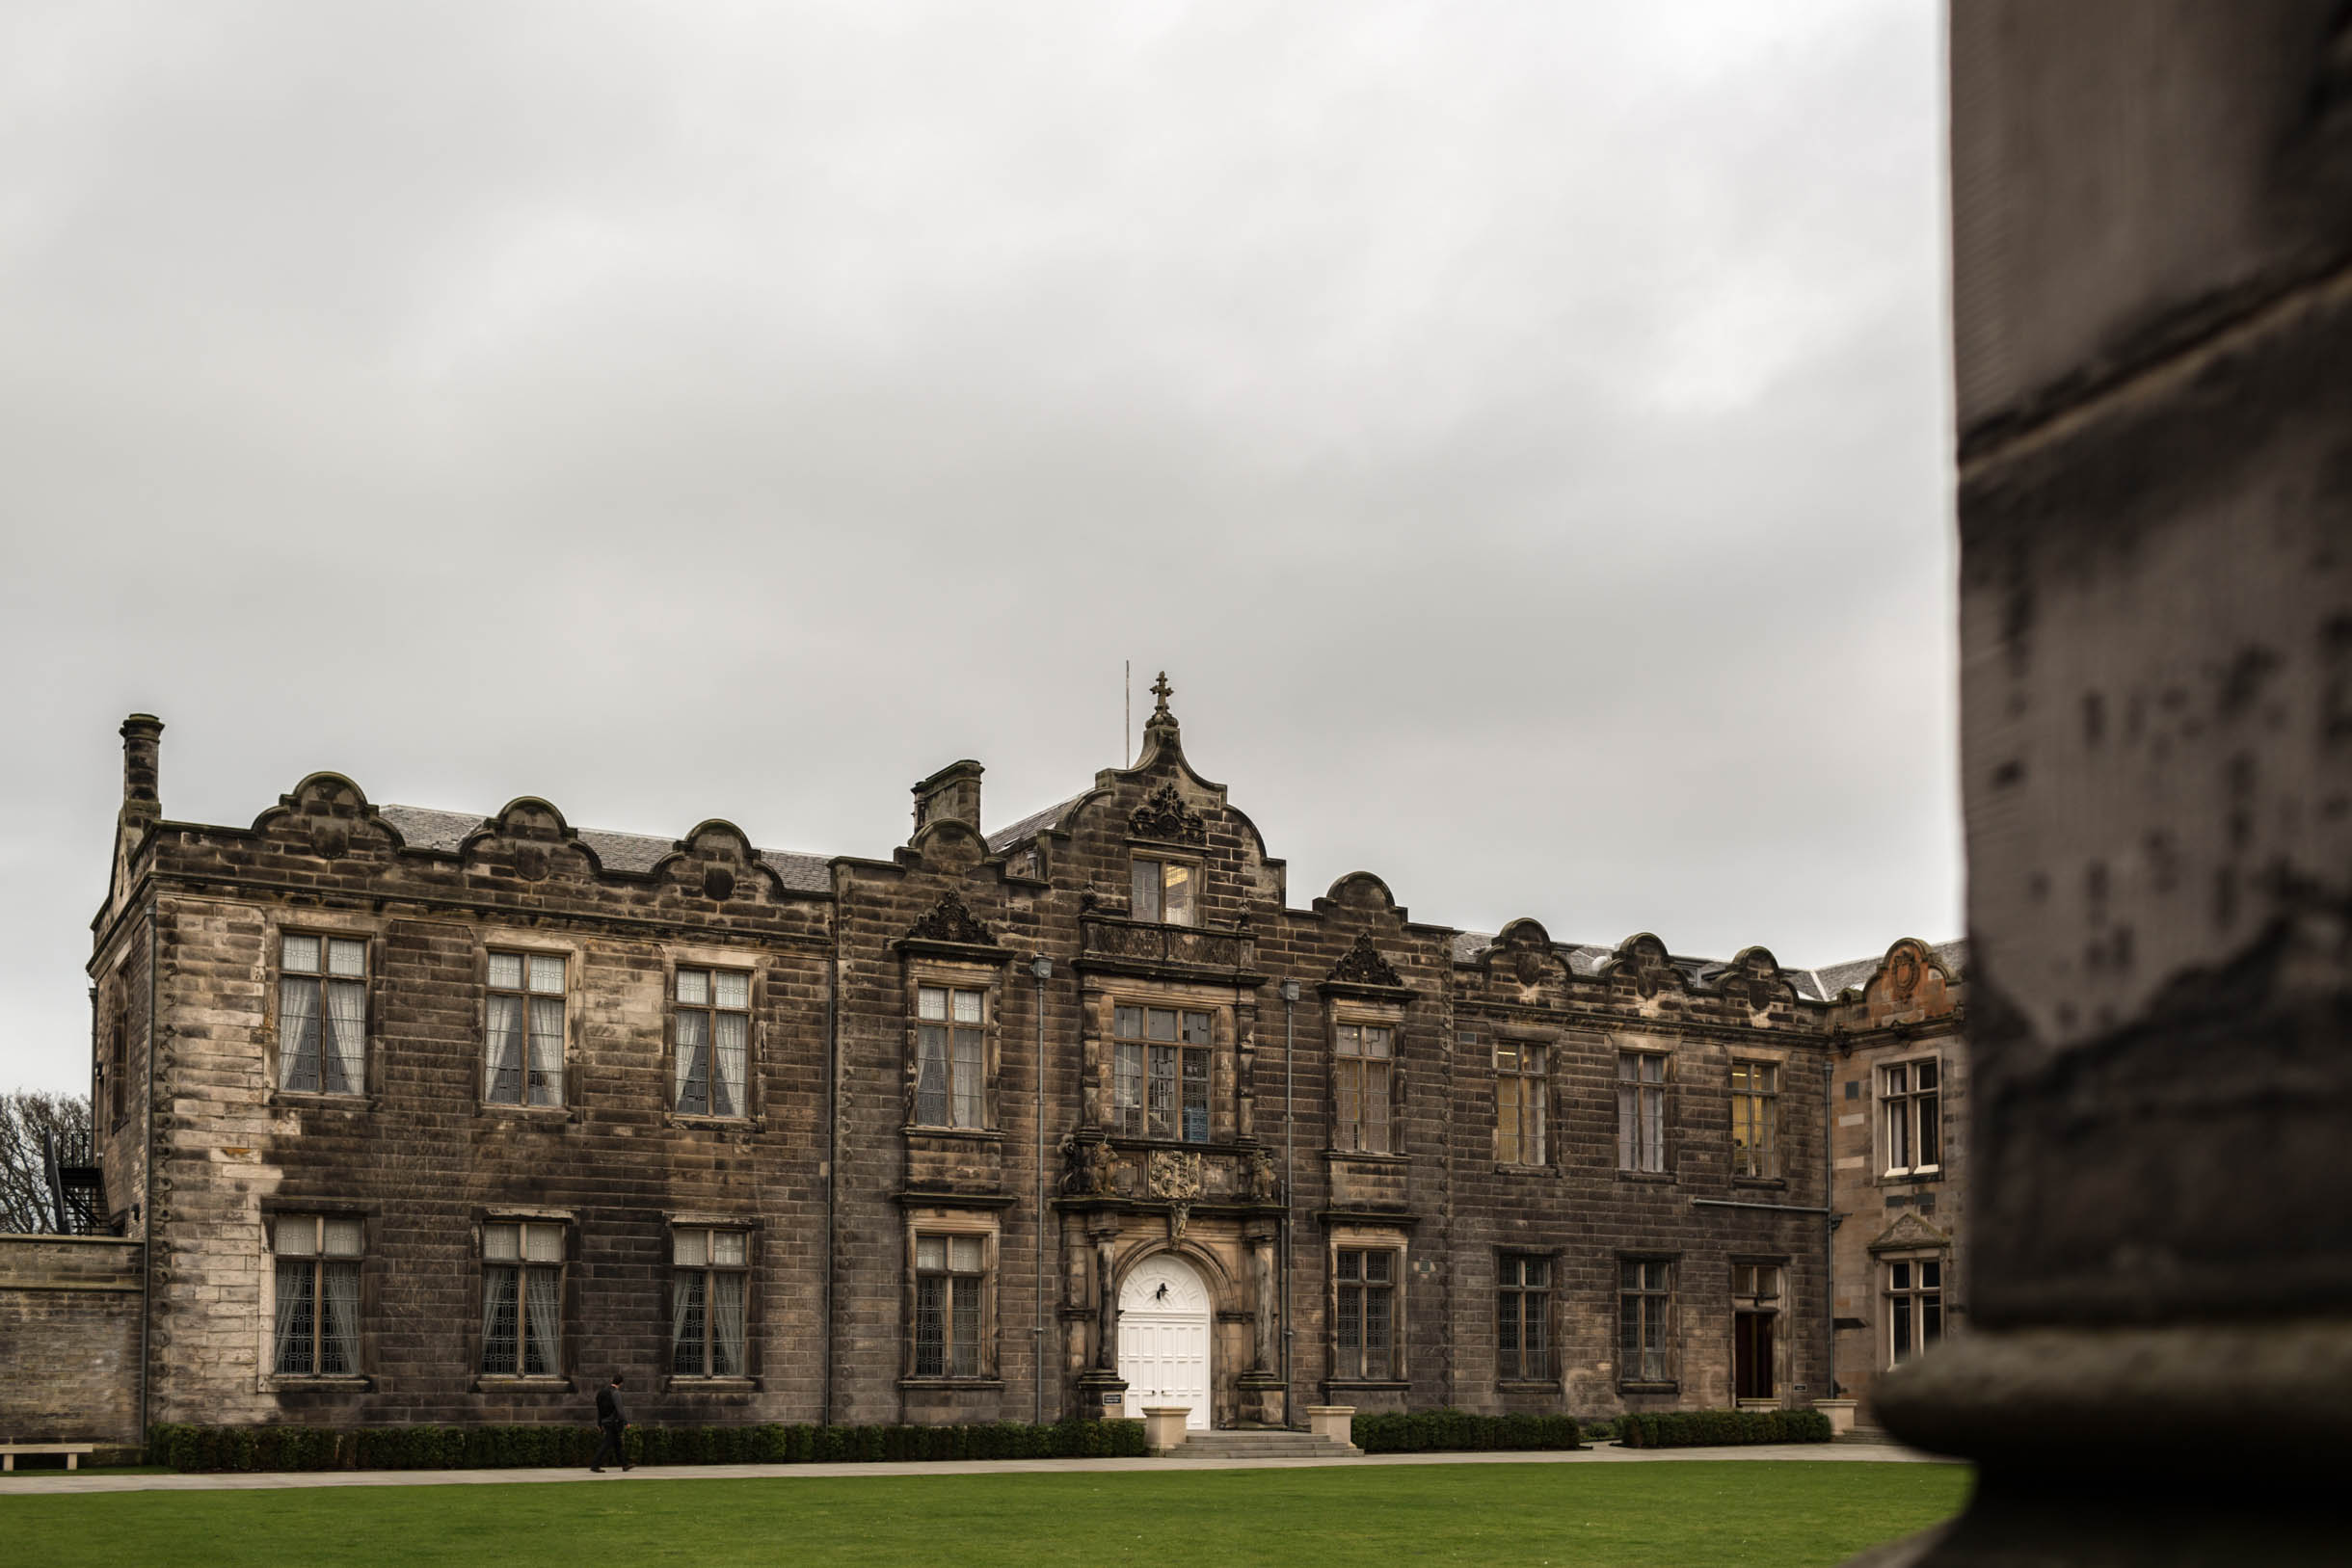 University of St. Andrews campus